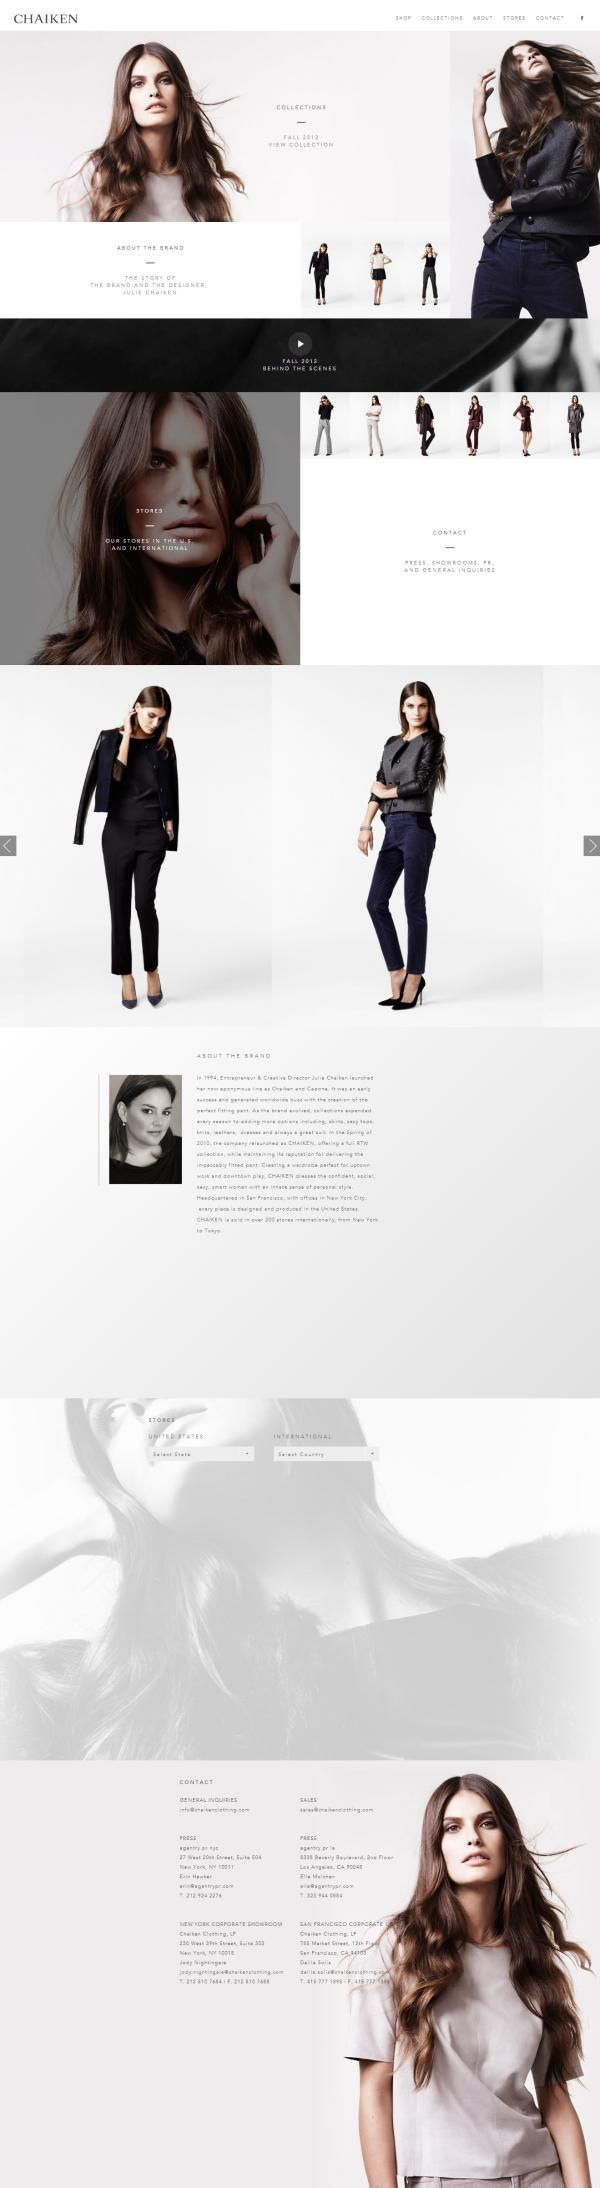 Bendigo Web Design eCommerce and small business web design that wont break your budget. Compare your design quotes. Free project consultation. Call 1300 628 437. Visit http://www.cmather.com/design/ for more details 클릭요소 좋음